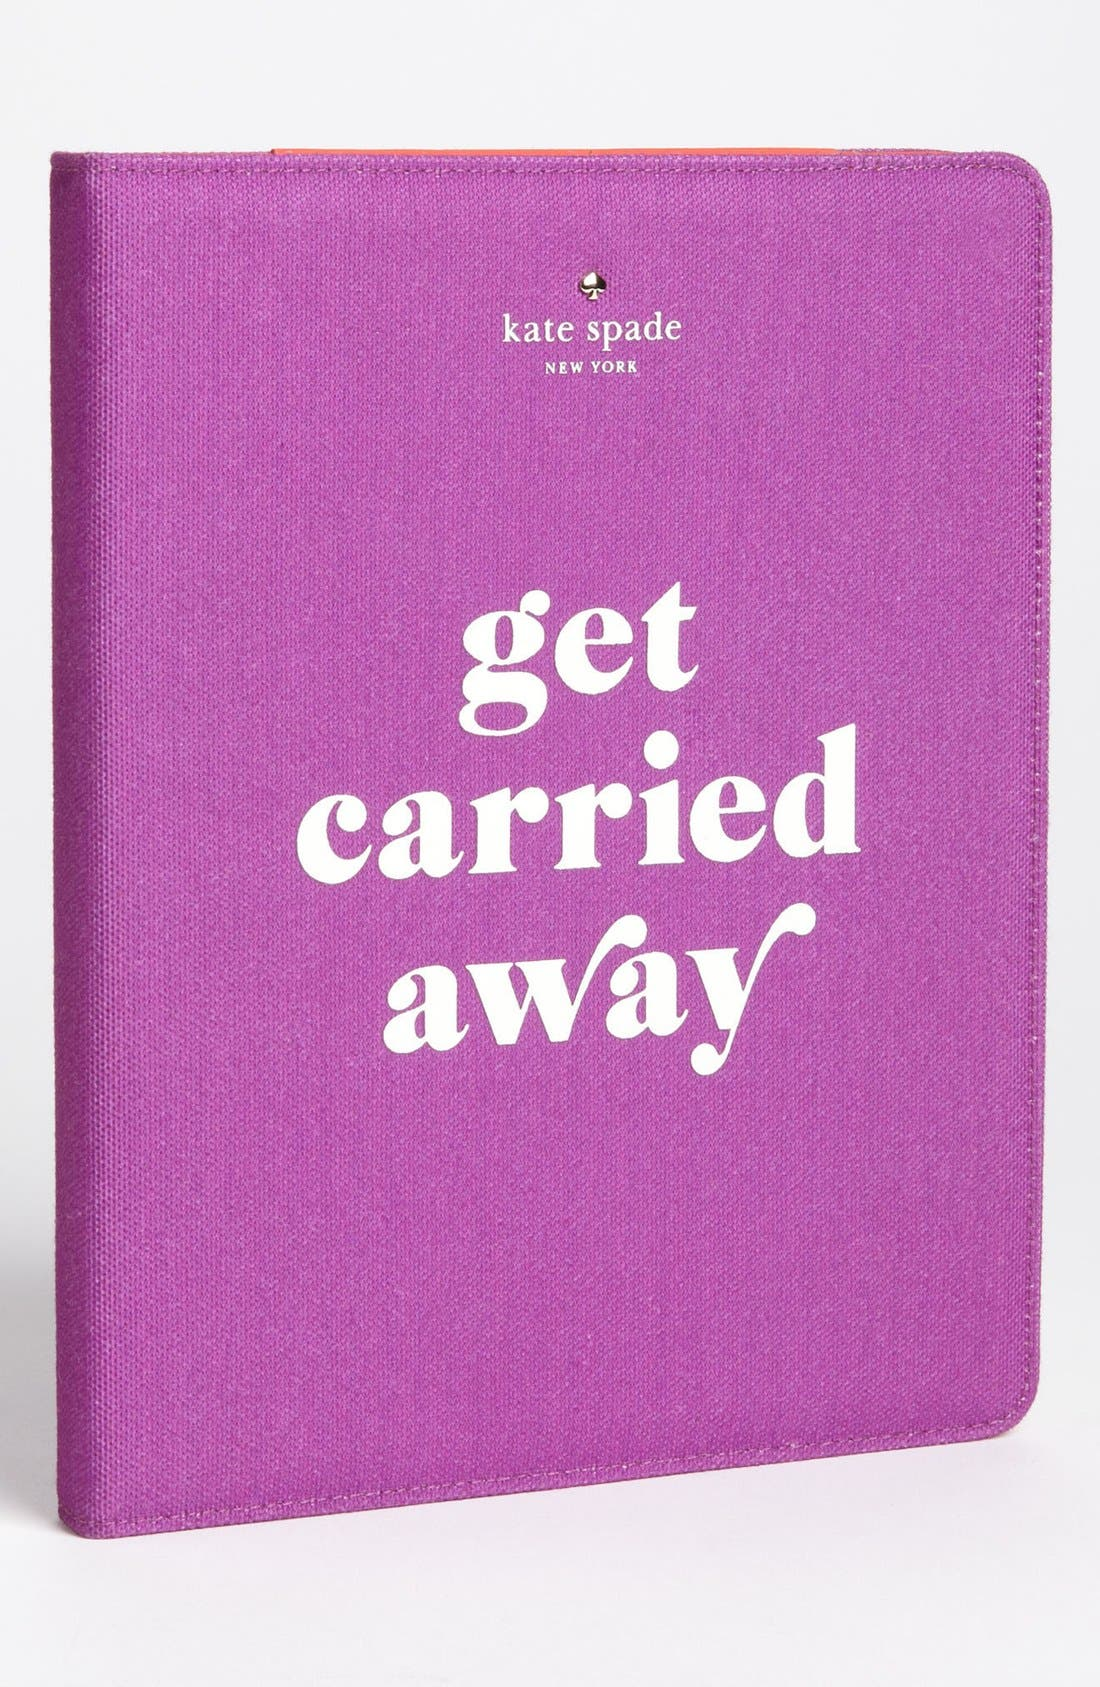 Alternate Image 1 Selected - kate spade new york 'get carried away' iPad 2 & 3 folio